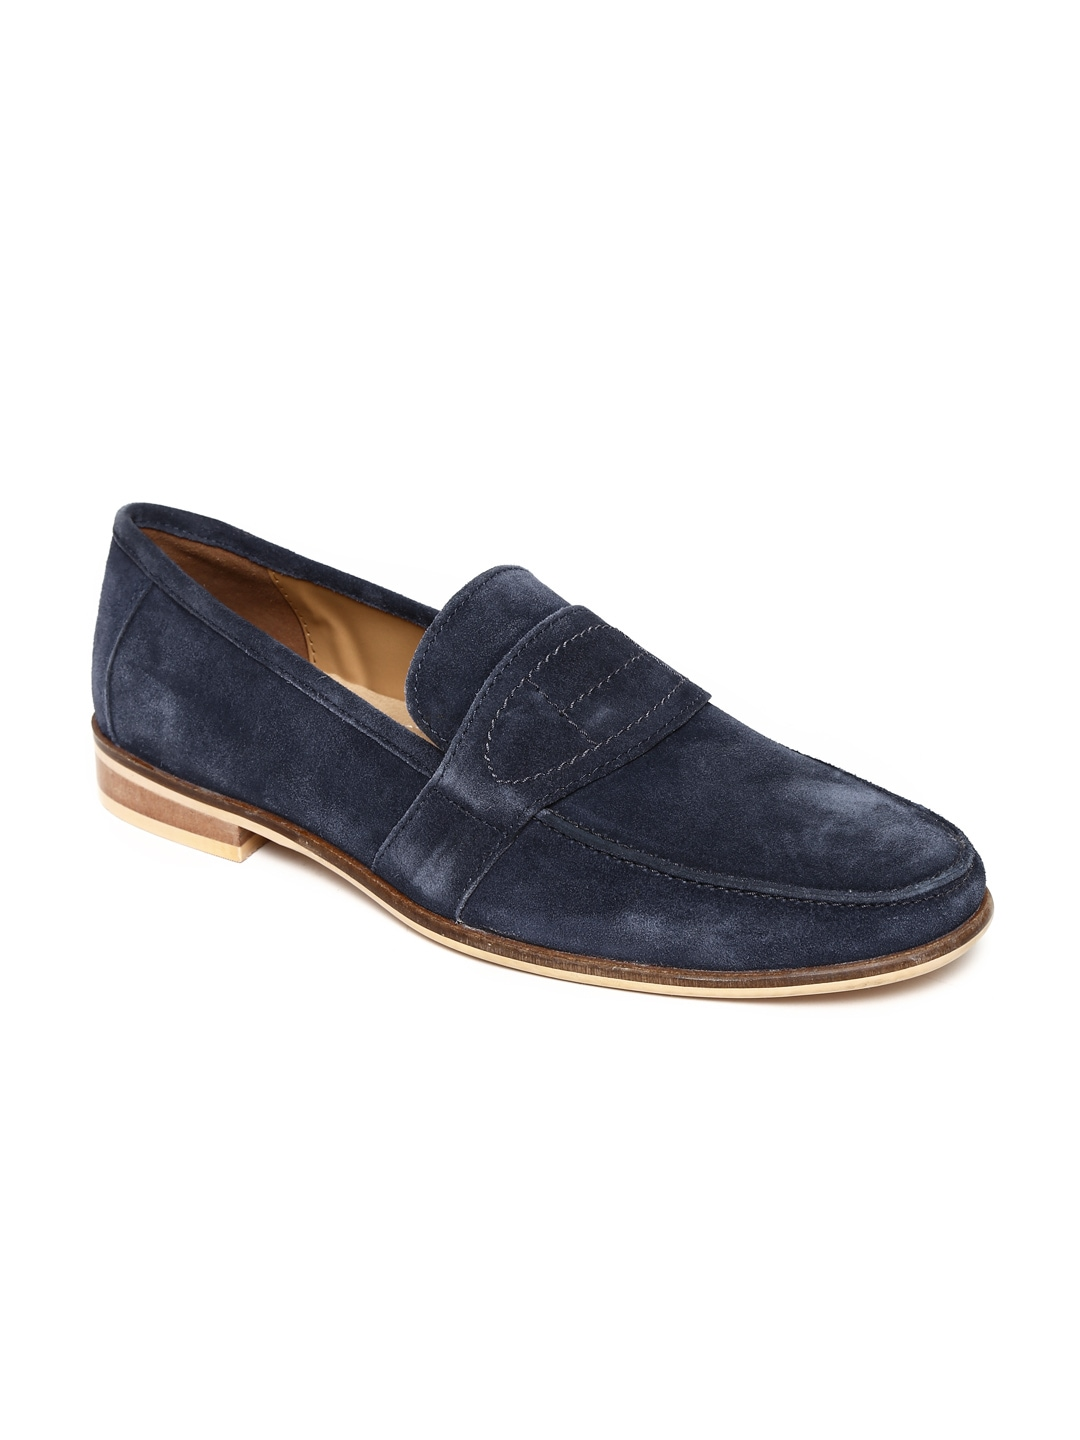 Famozi Famozi Men Navy Suede Casual Shoes (Blue)